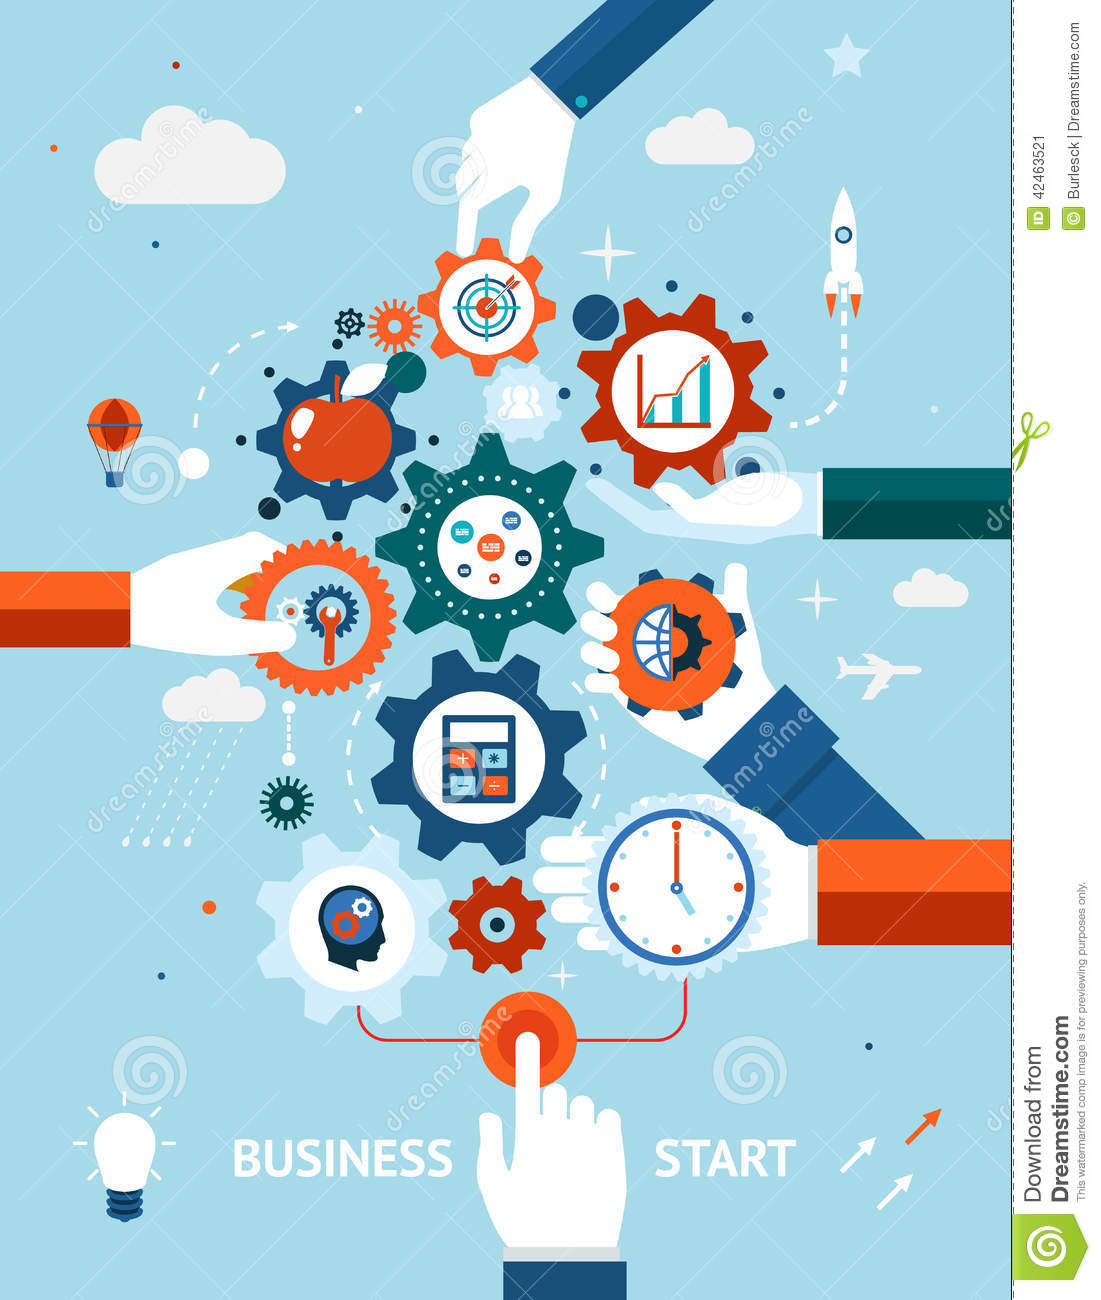 Business And Entrepreneurship Business Start Stock Vector ...